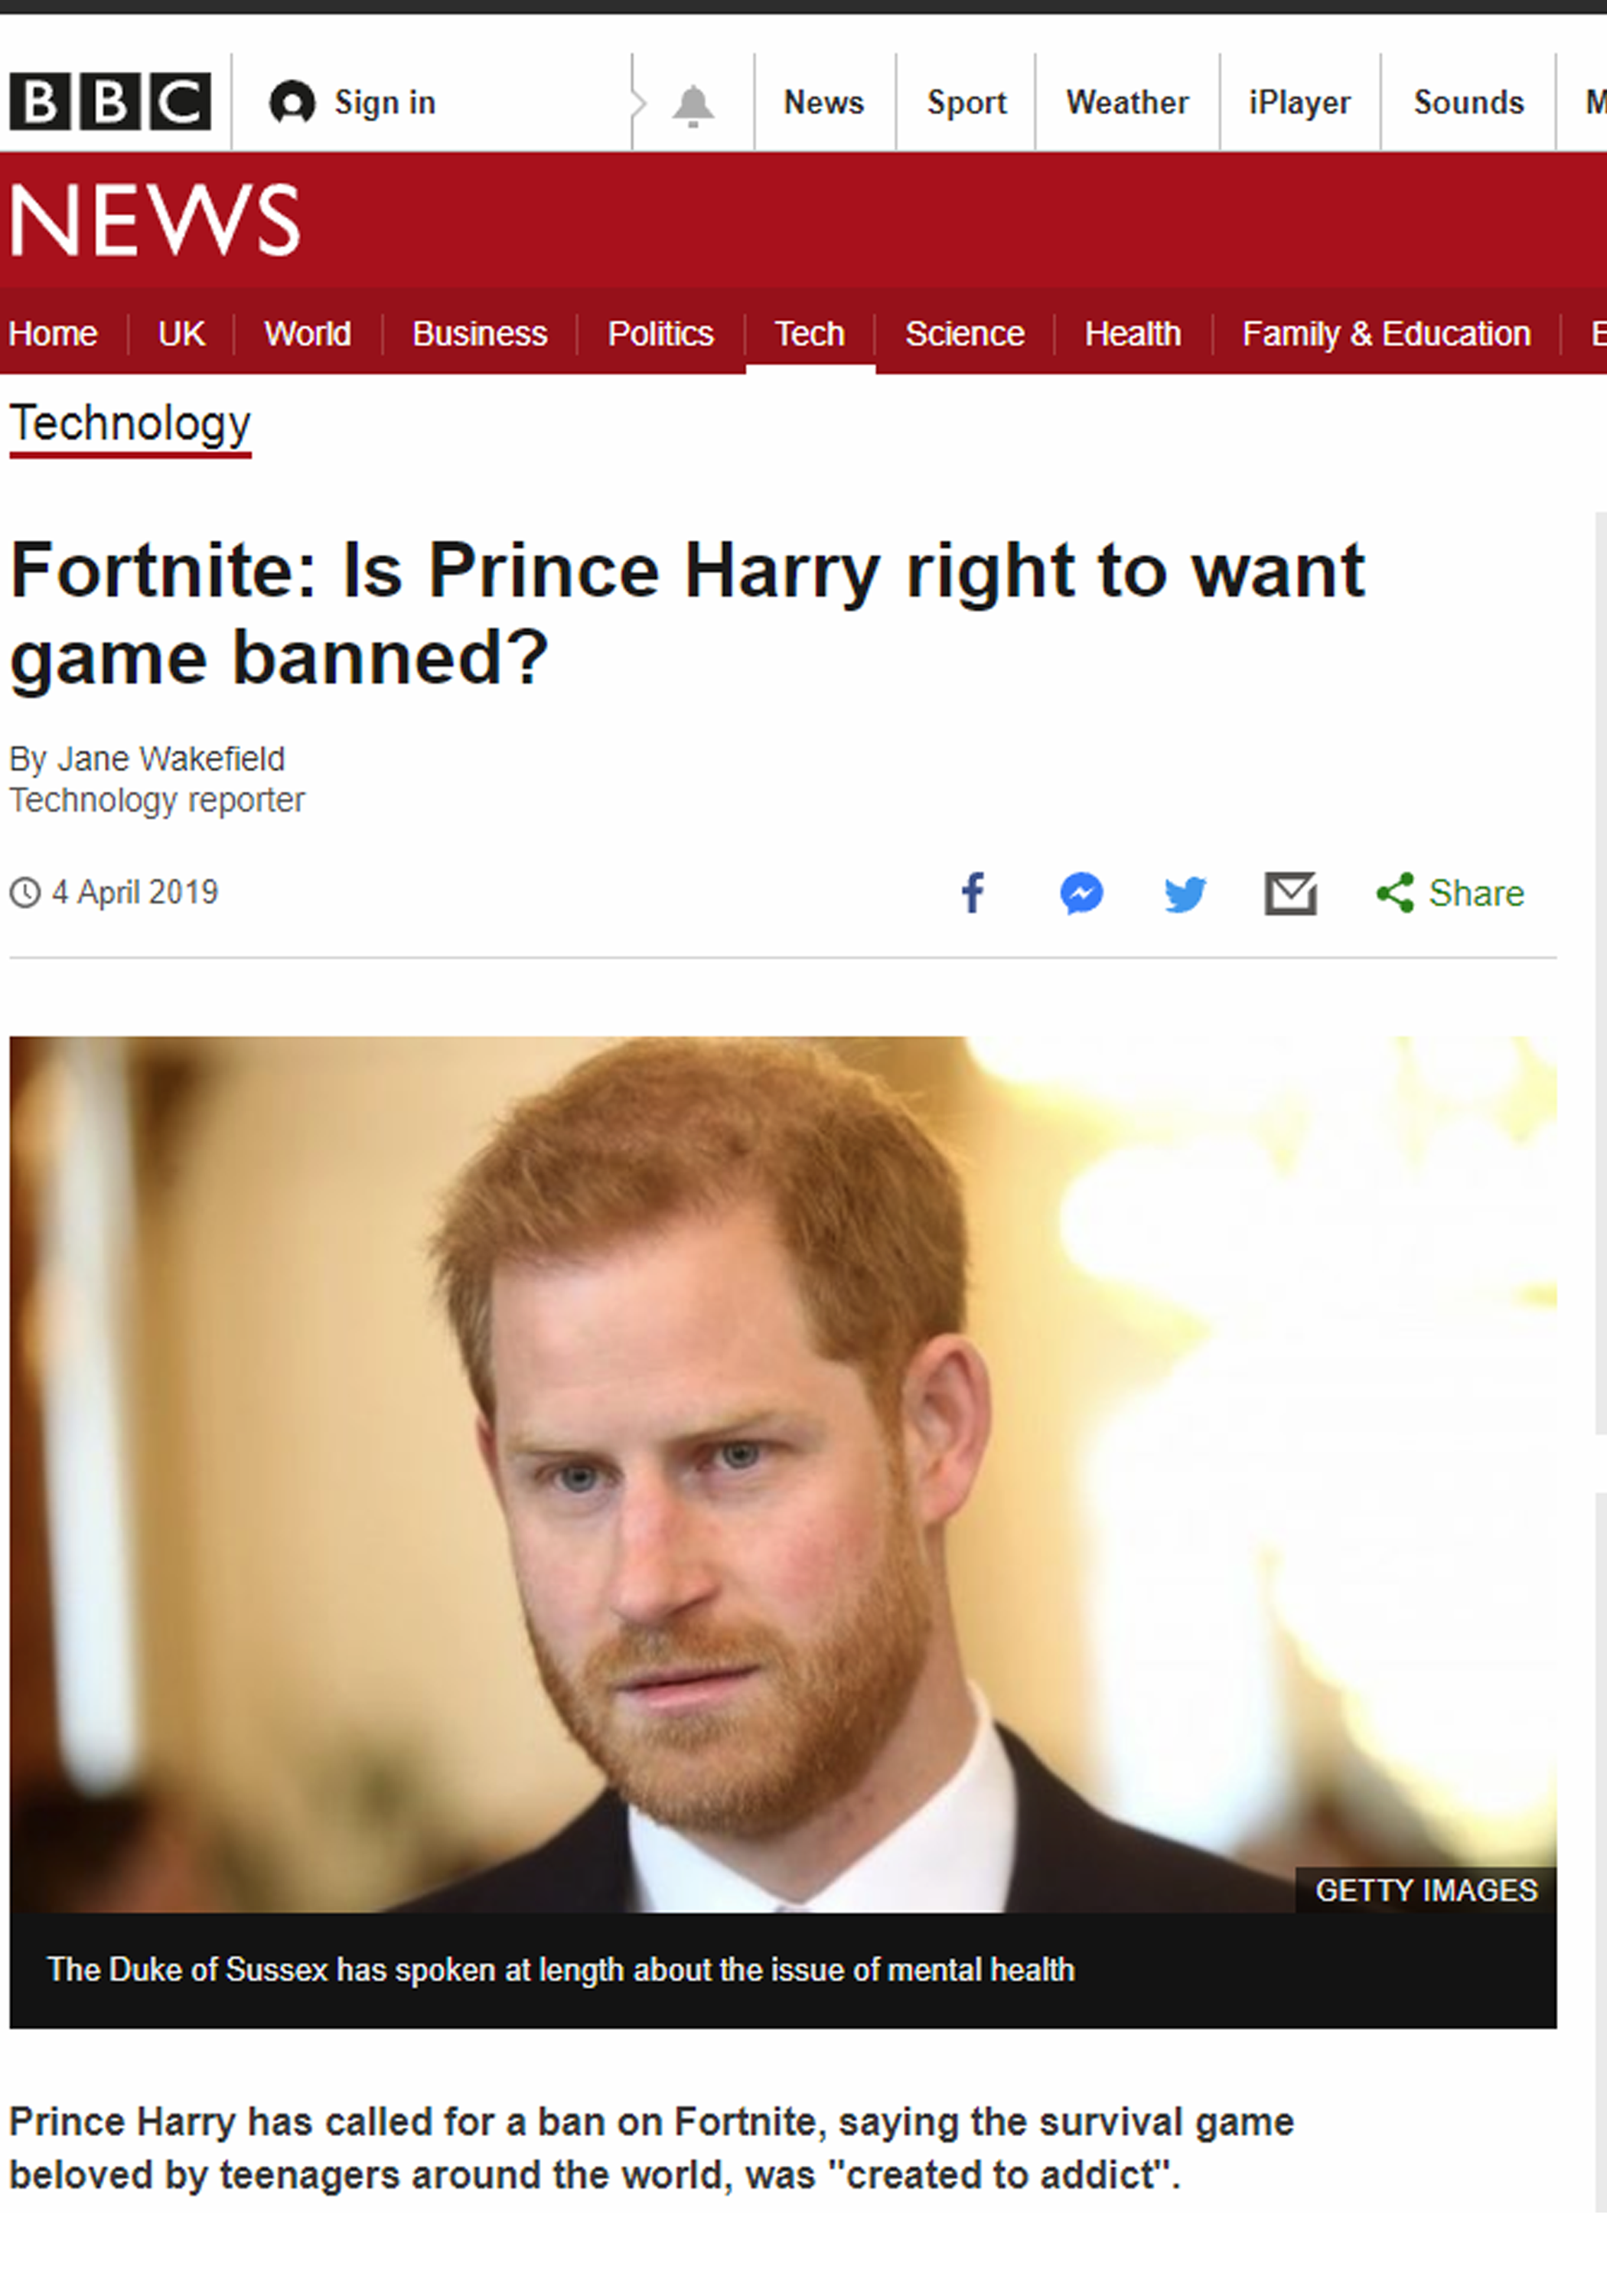 Fortnite: Is Prince Harry right to want game banned